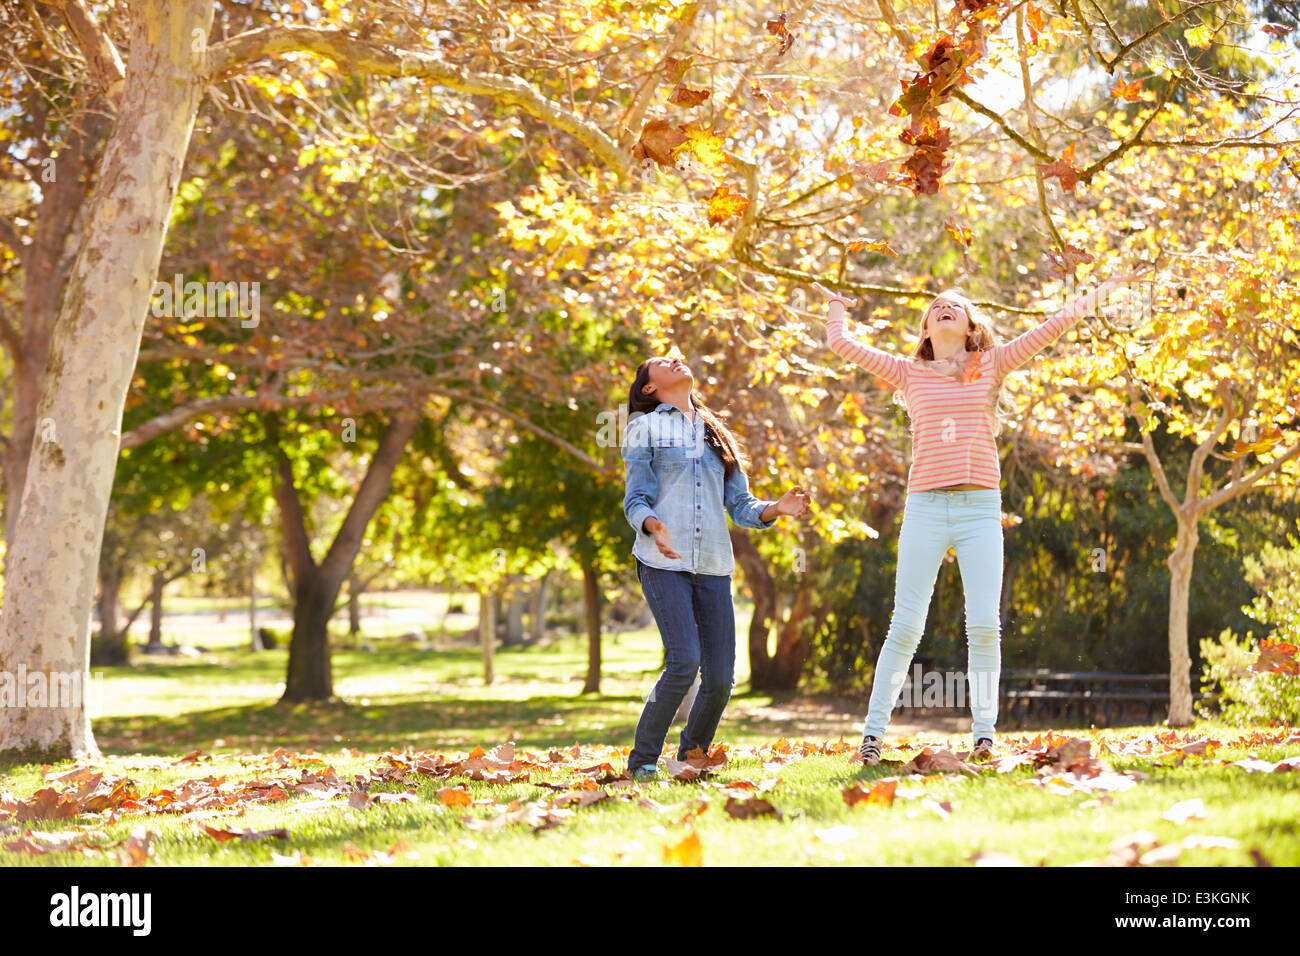 Two Girls Throwing Autumn Leaves In The Air - Stock Image